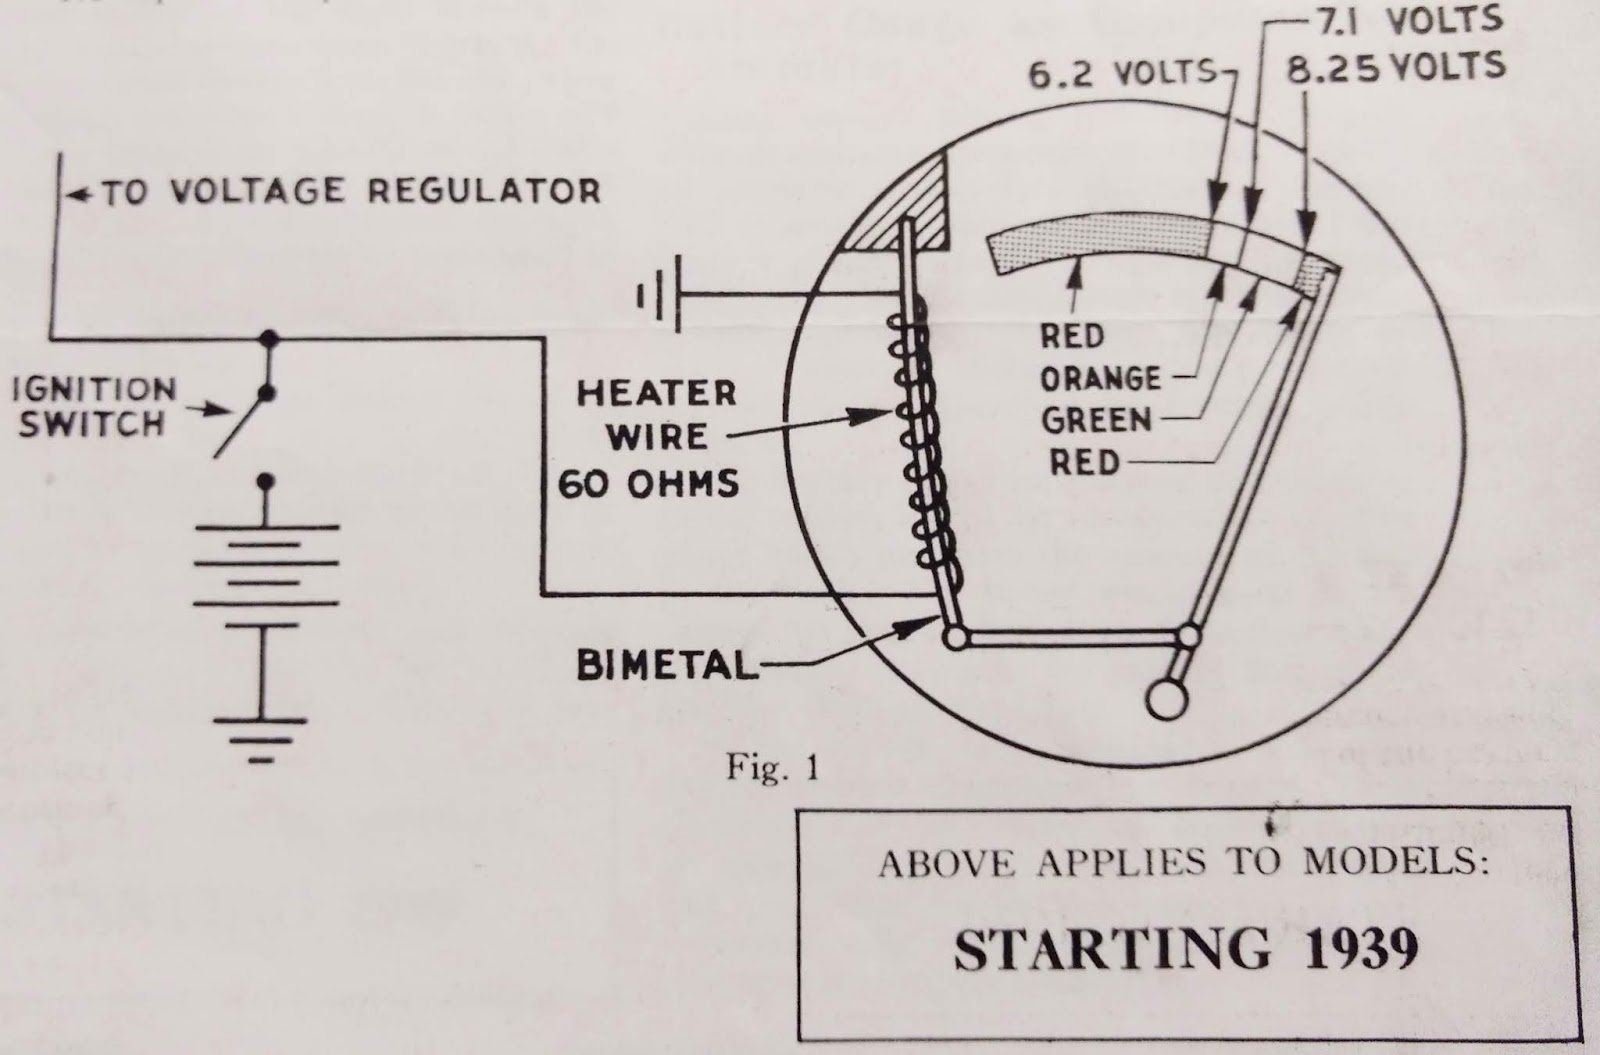 Ignition Switch Wiring Diagram Starting System Wiring Diagram Mercury